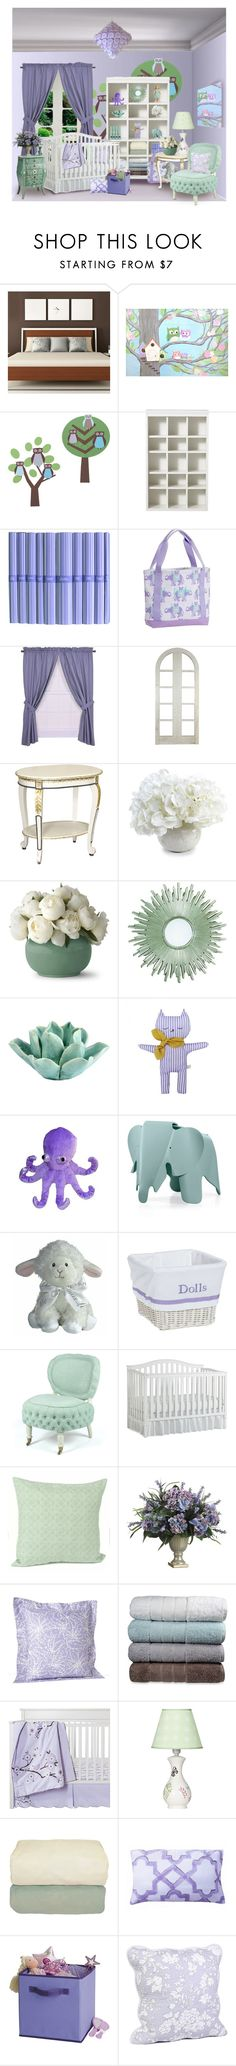 """""""Little Girl Nursery"""" by rotunda ❤ liked on Polyvore featuring interior, interiors, interior design, home, home decor, interior decorating, DENY Designs, DwellStudio, Home Decorators Collection and Ellis Curtain"""